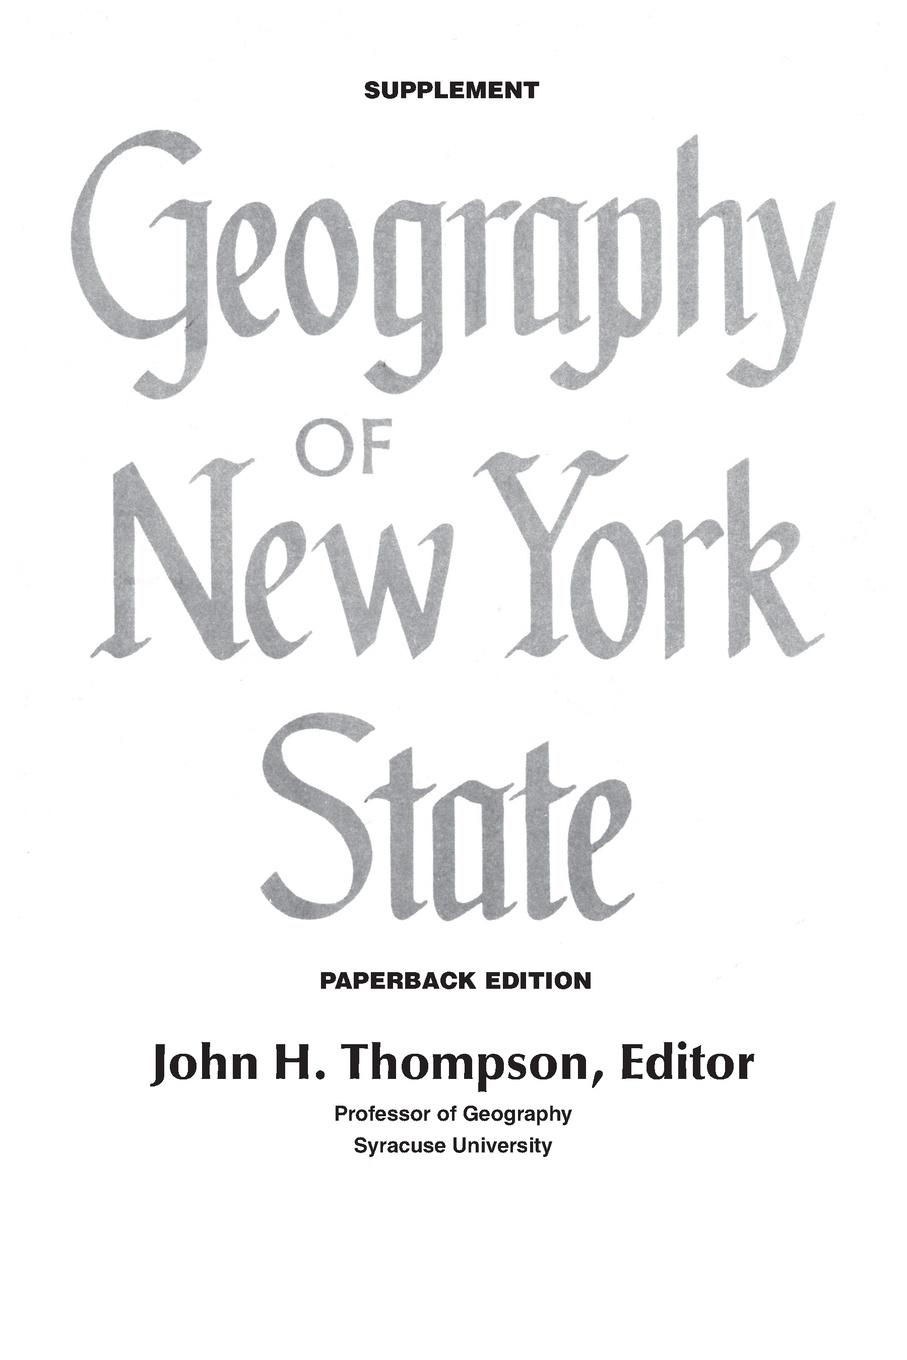 Geography of New York State Supplement